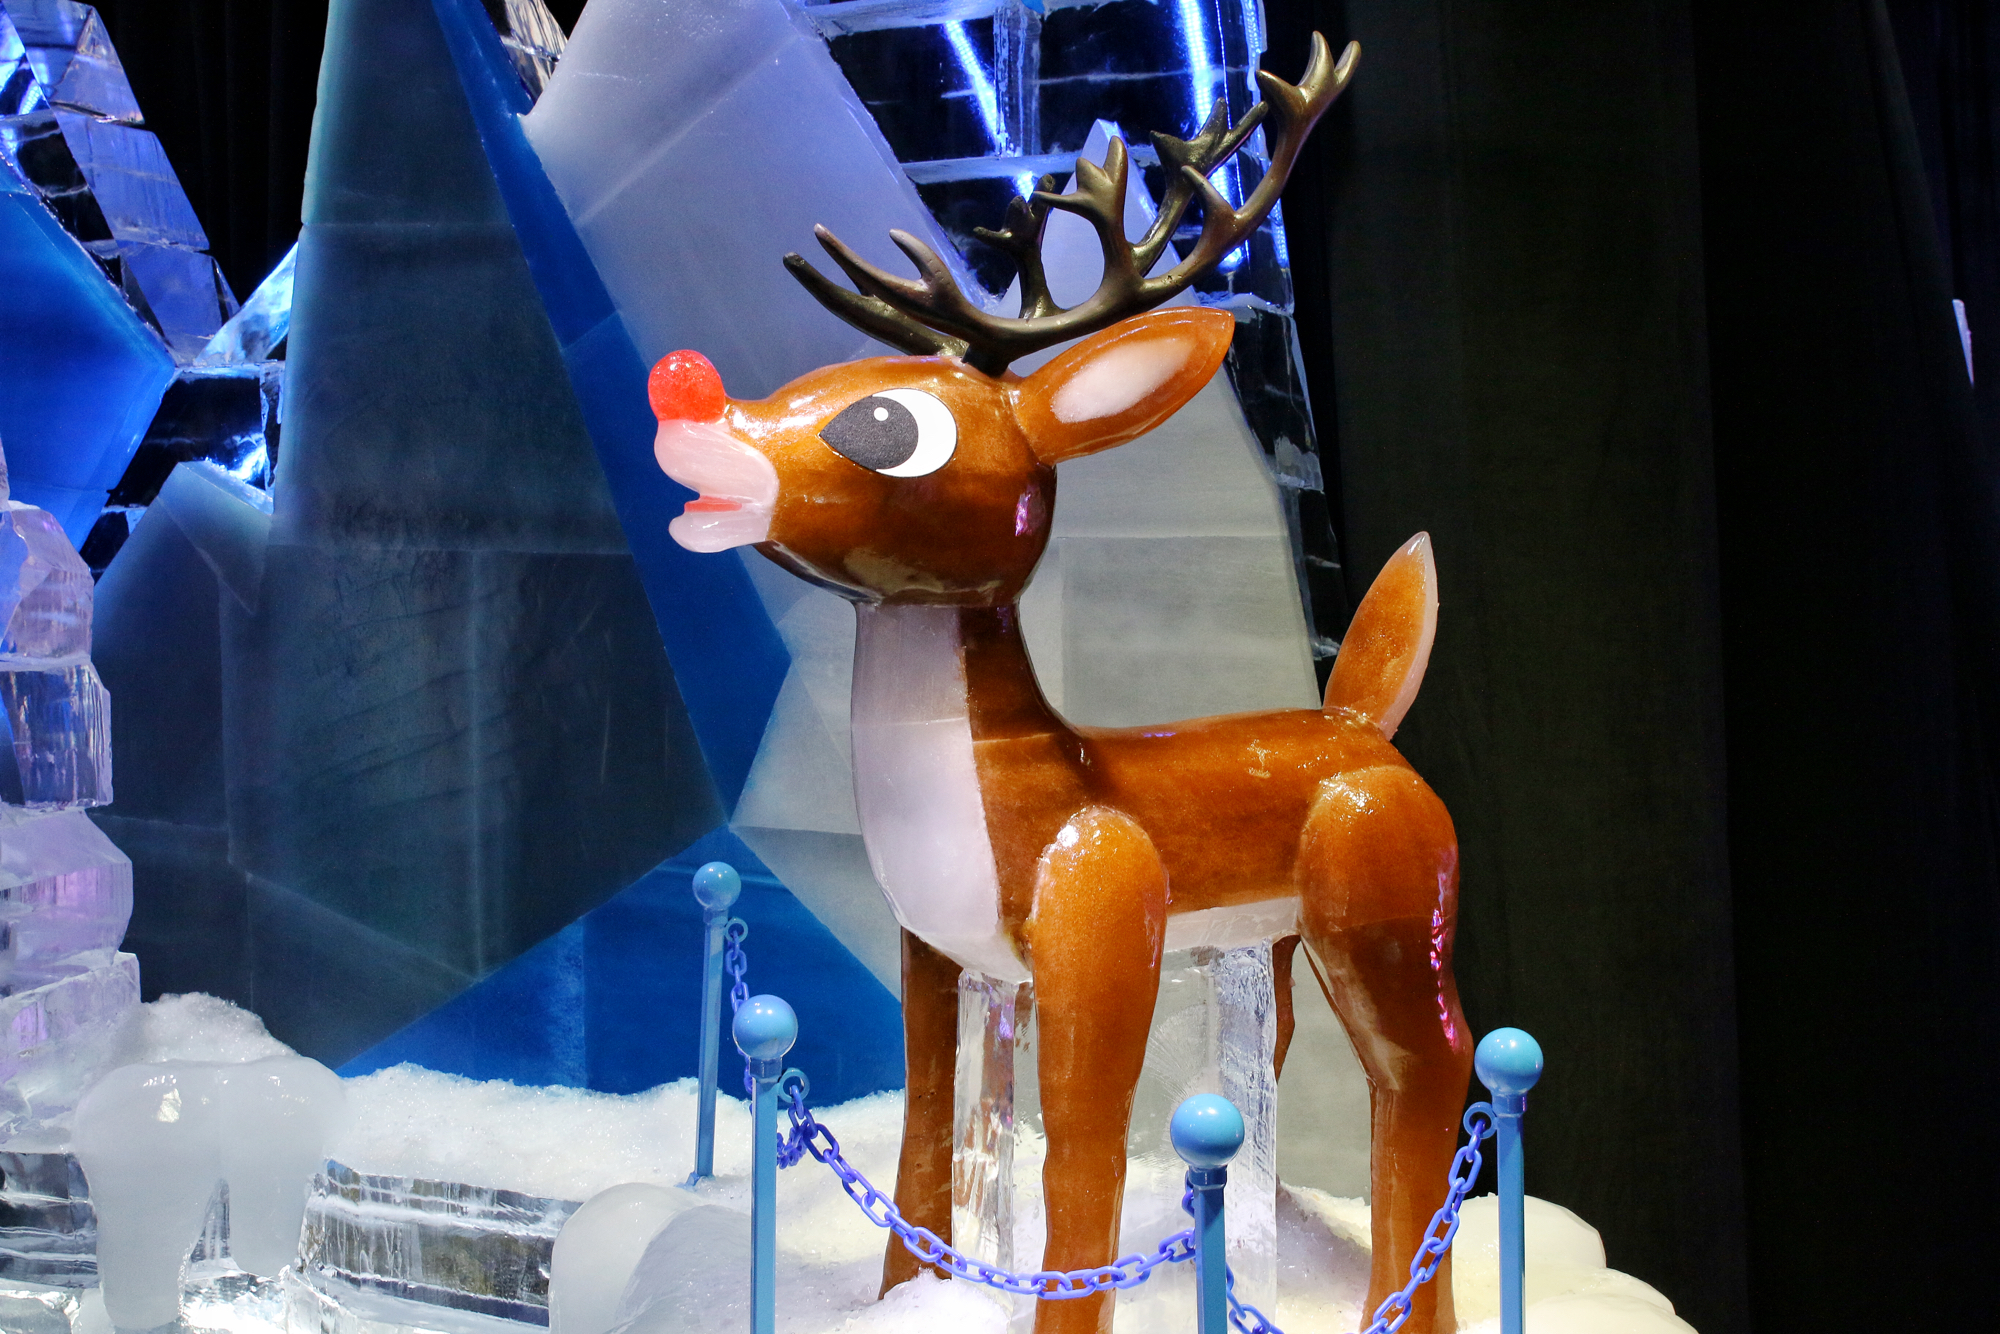 Rudolph the reindeer made of ice